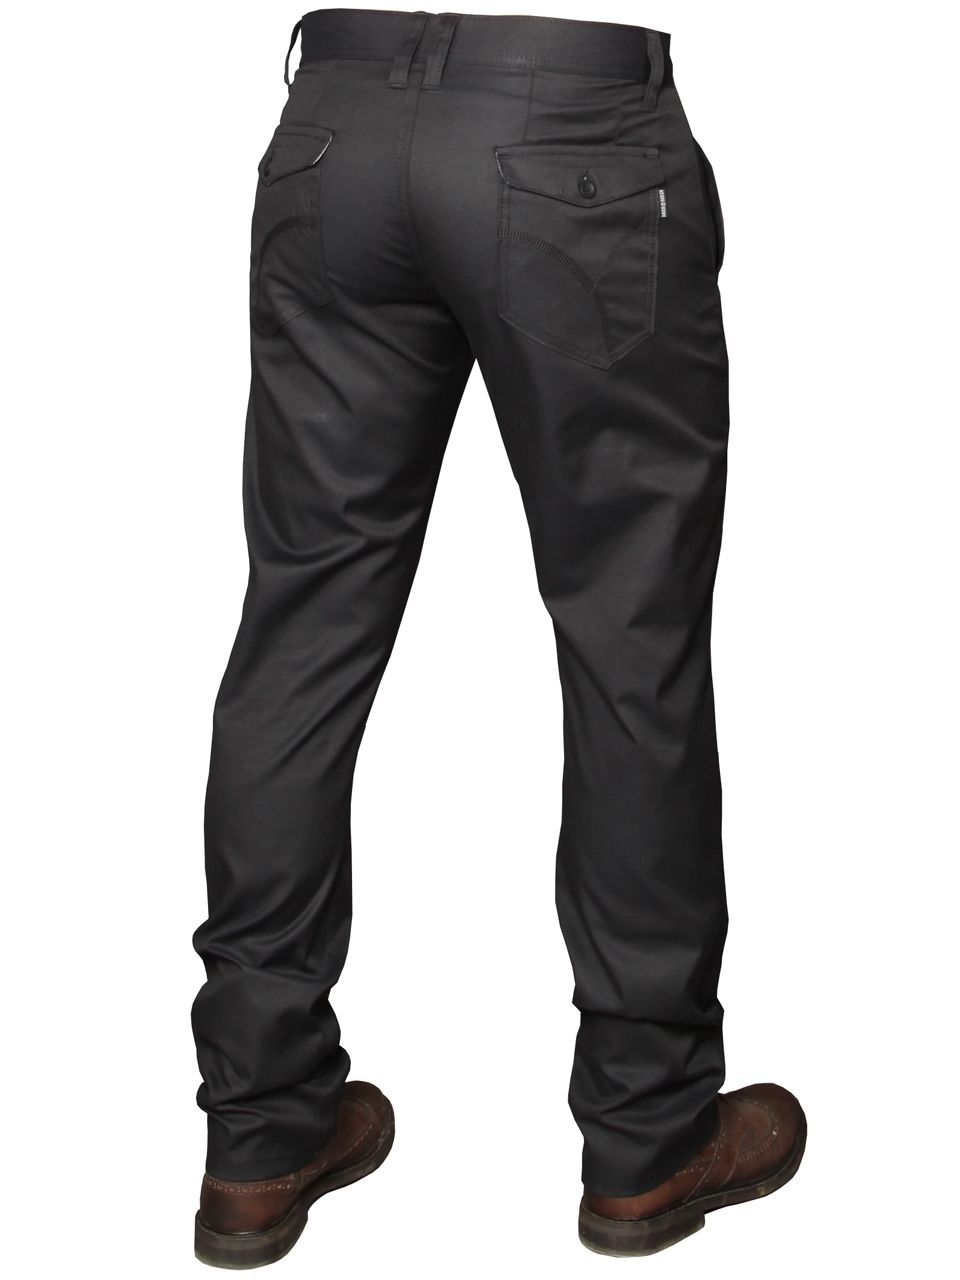 Mens Black Stretch Jeans